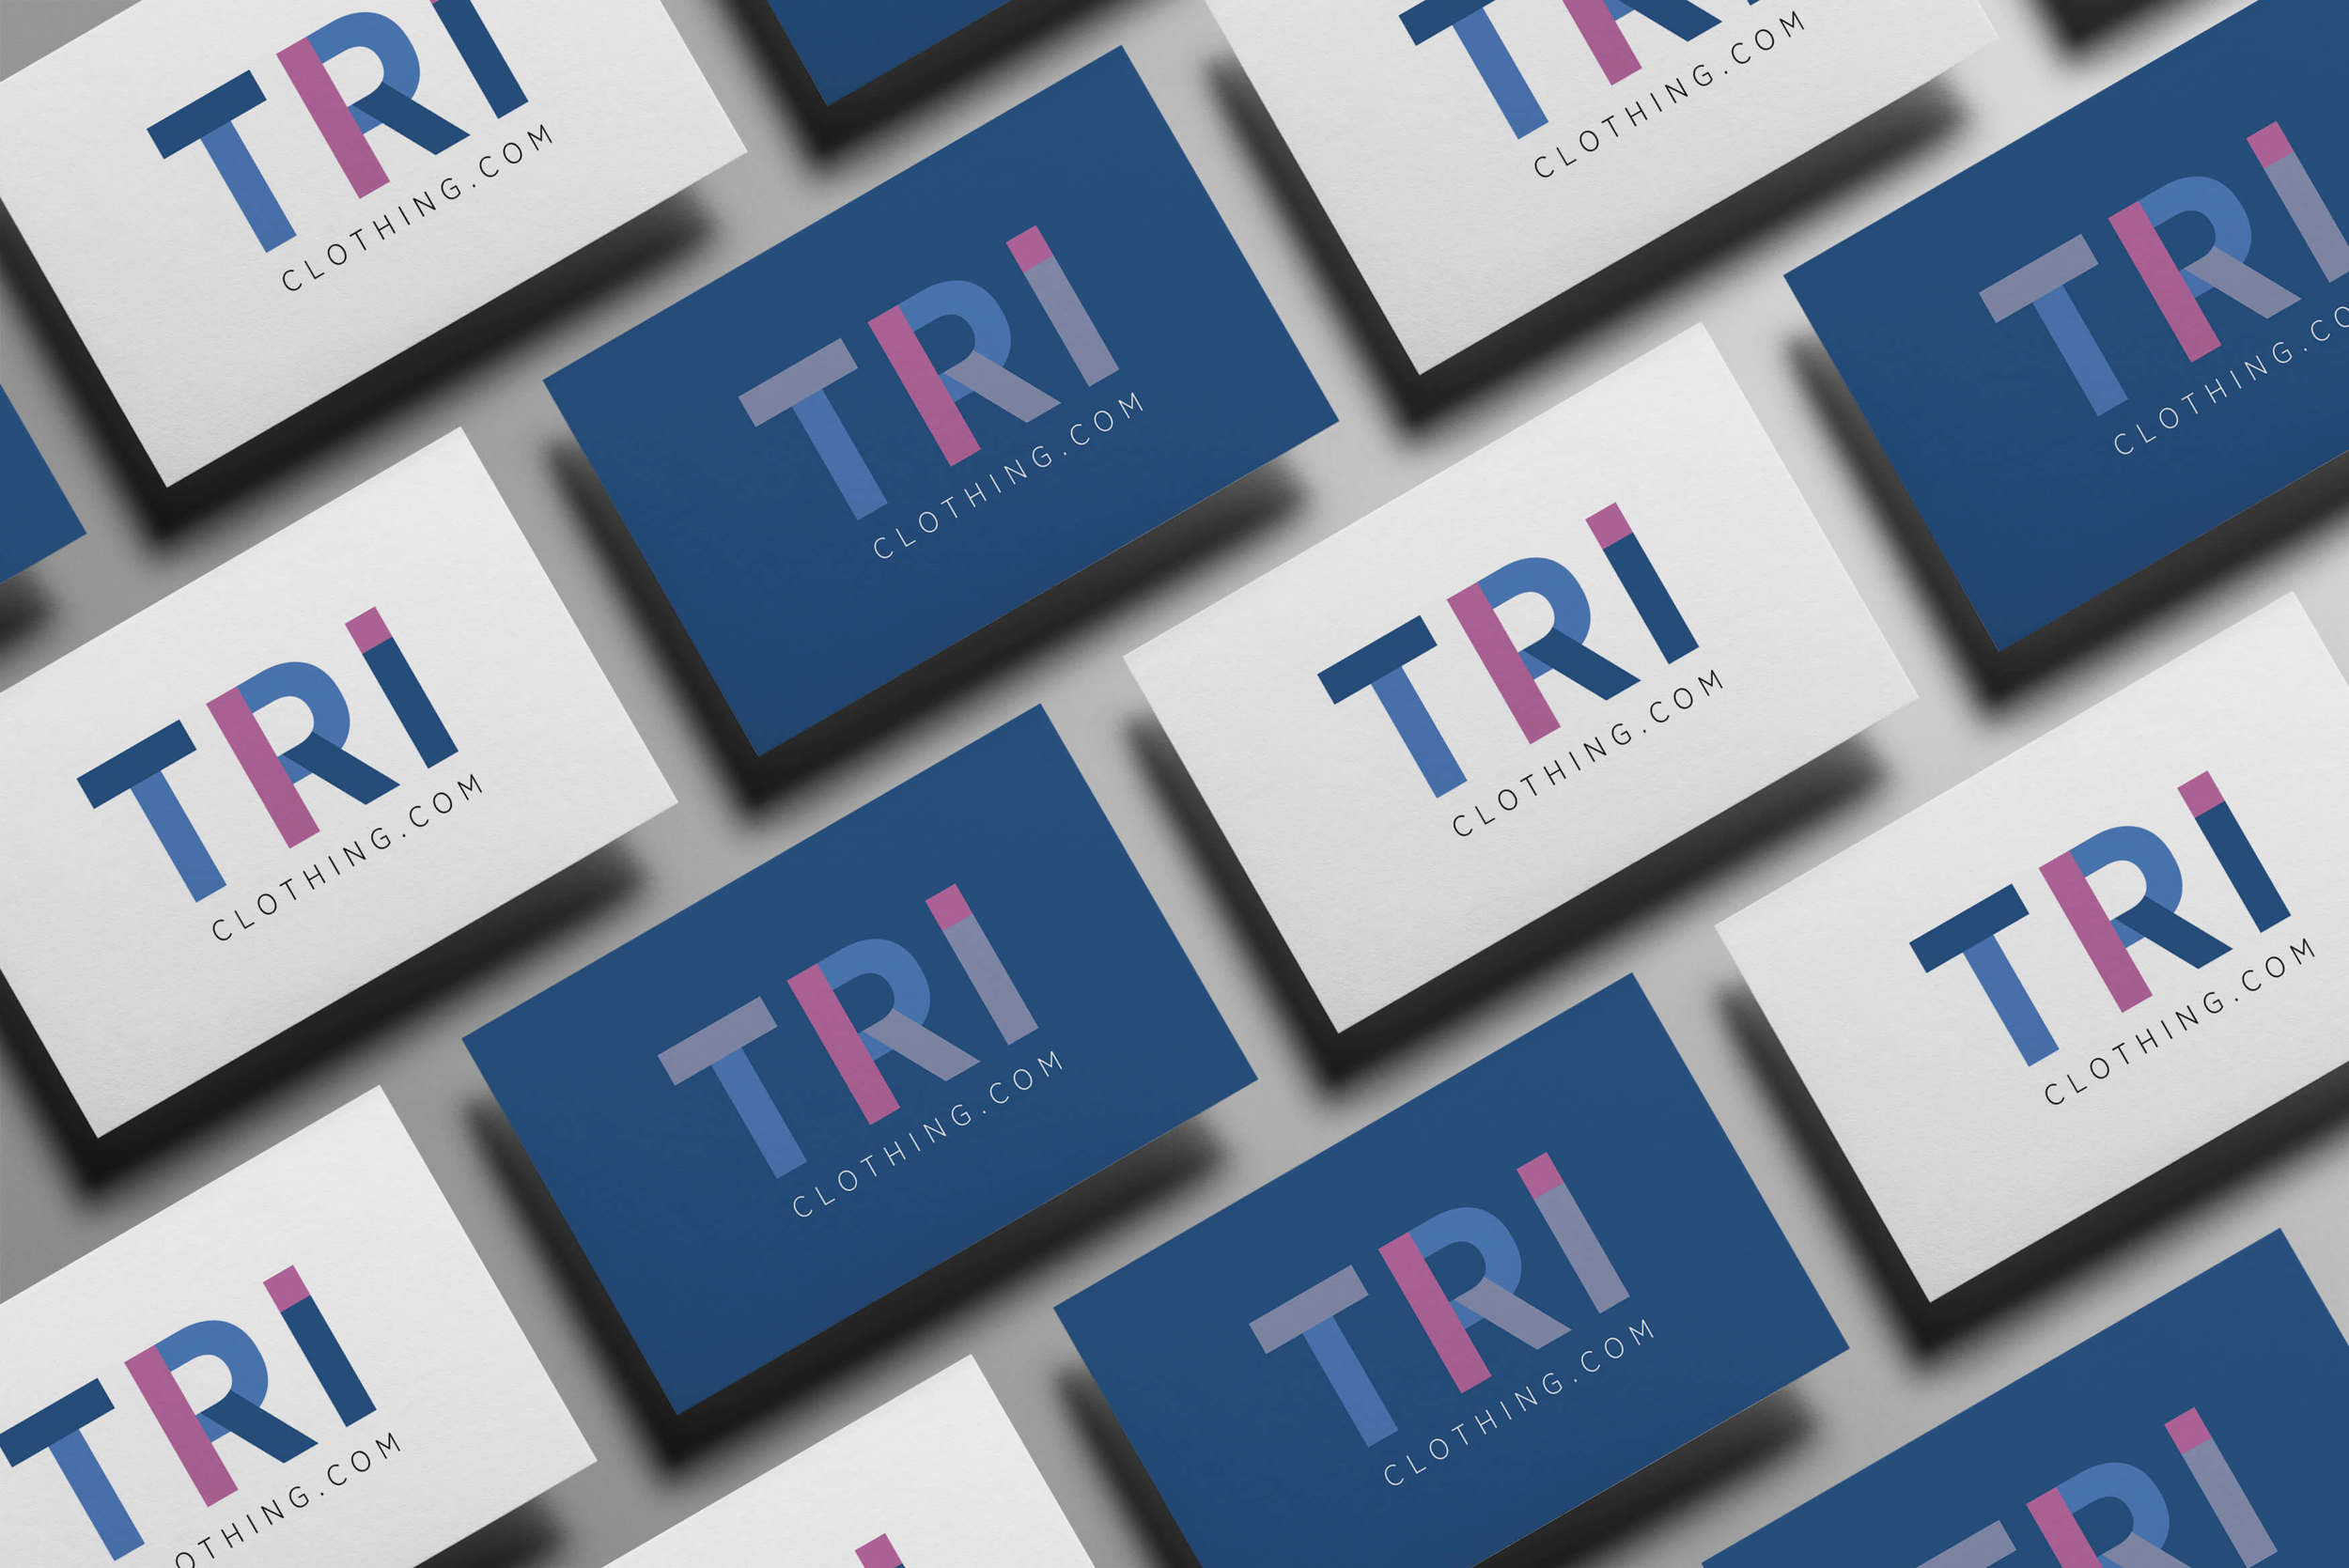 Create Onsight's design of various business cards and company logo for TRI Clothing